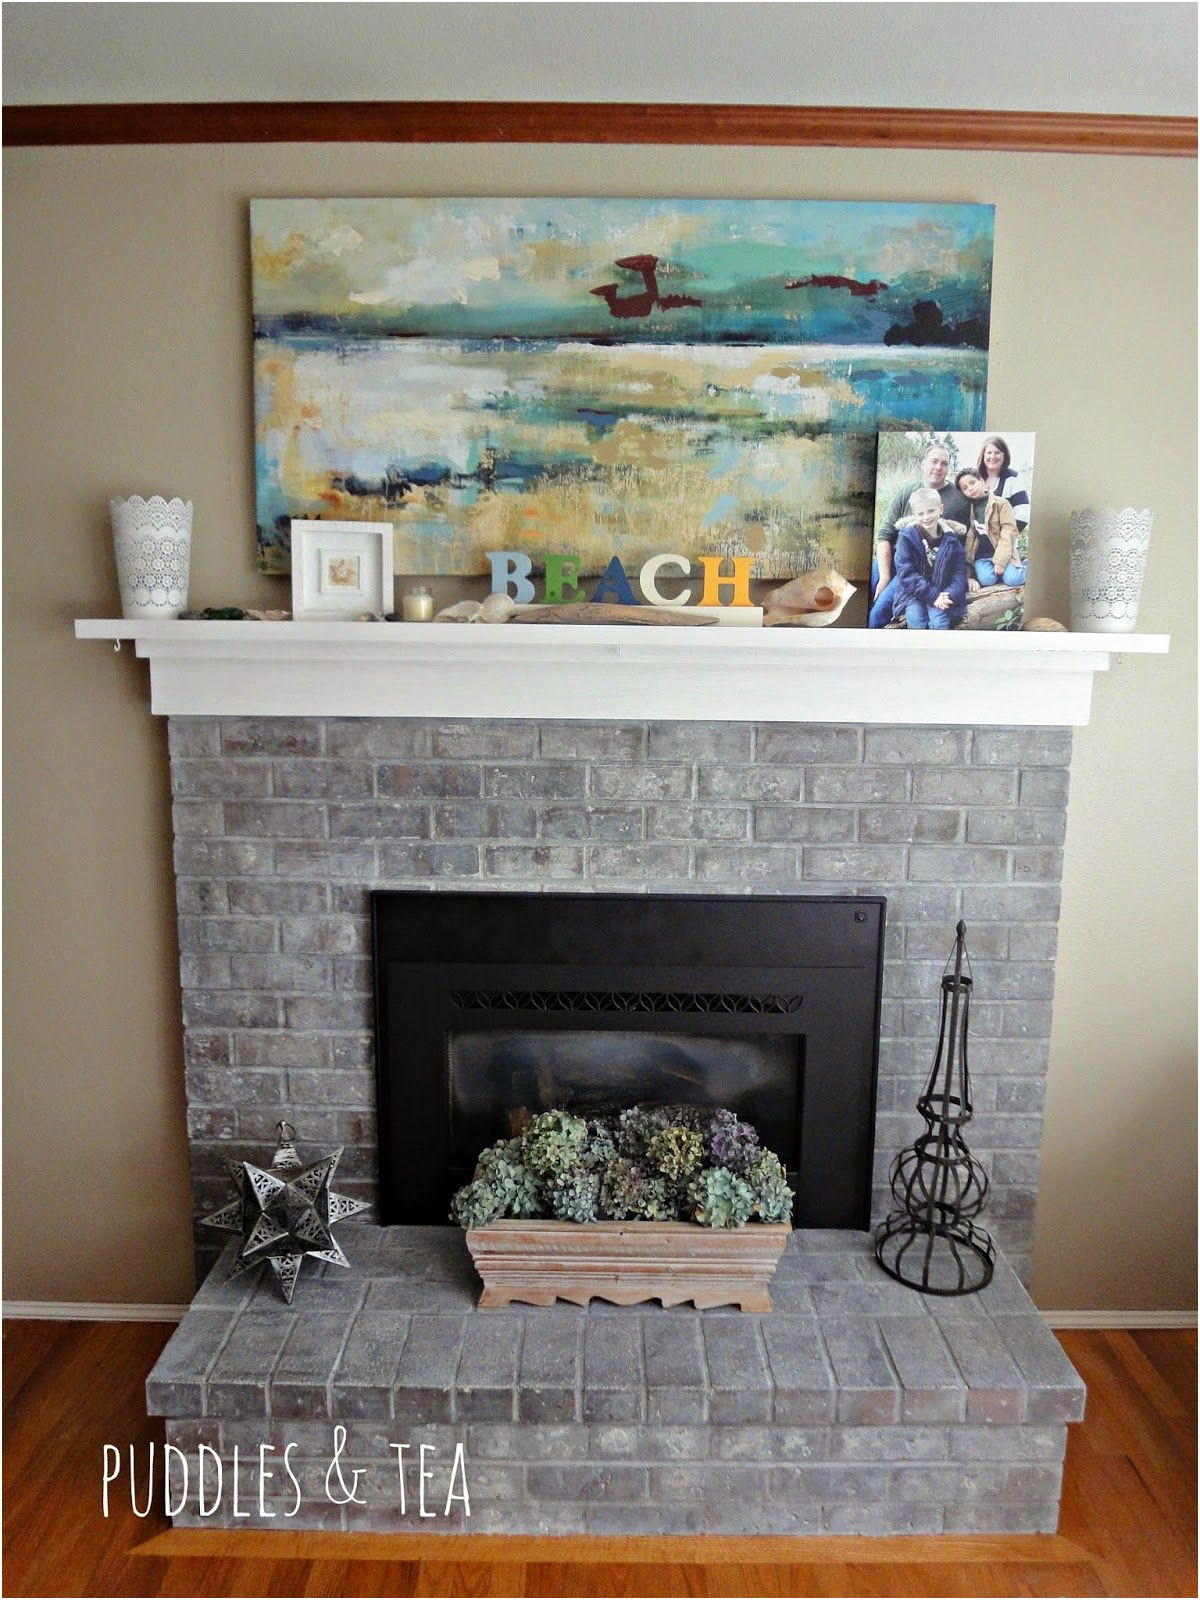 Brick Fireplace Remodel Awesome Puddles & Tea White Wash Brick Fireplace Makeover